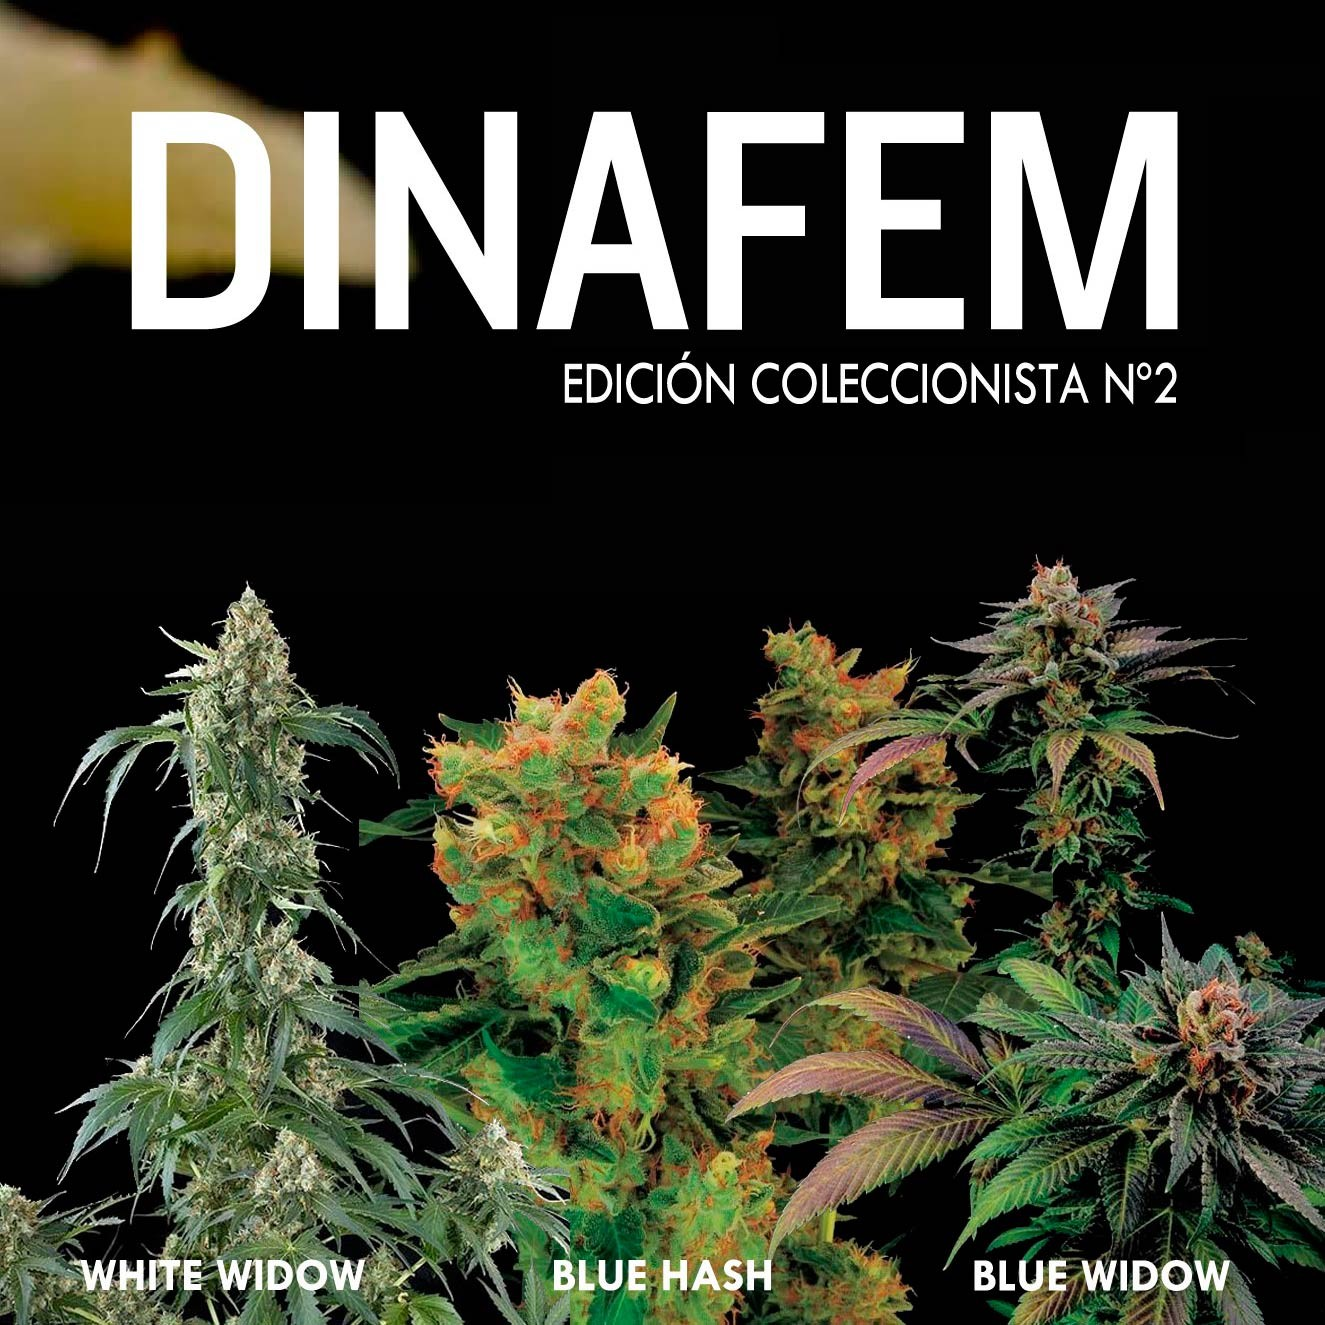 Dinafem collector #2 6 seeds